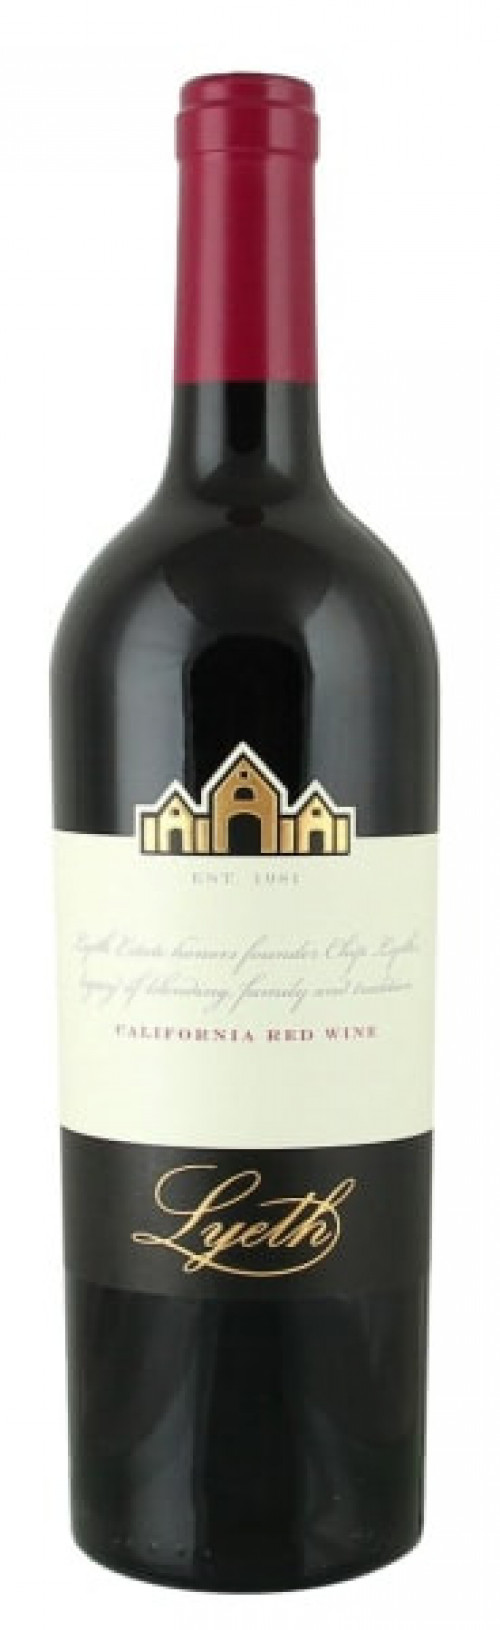 2018 Lyeth Red Wine 750ml